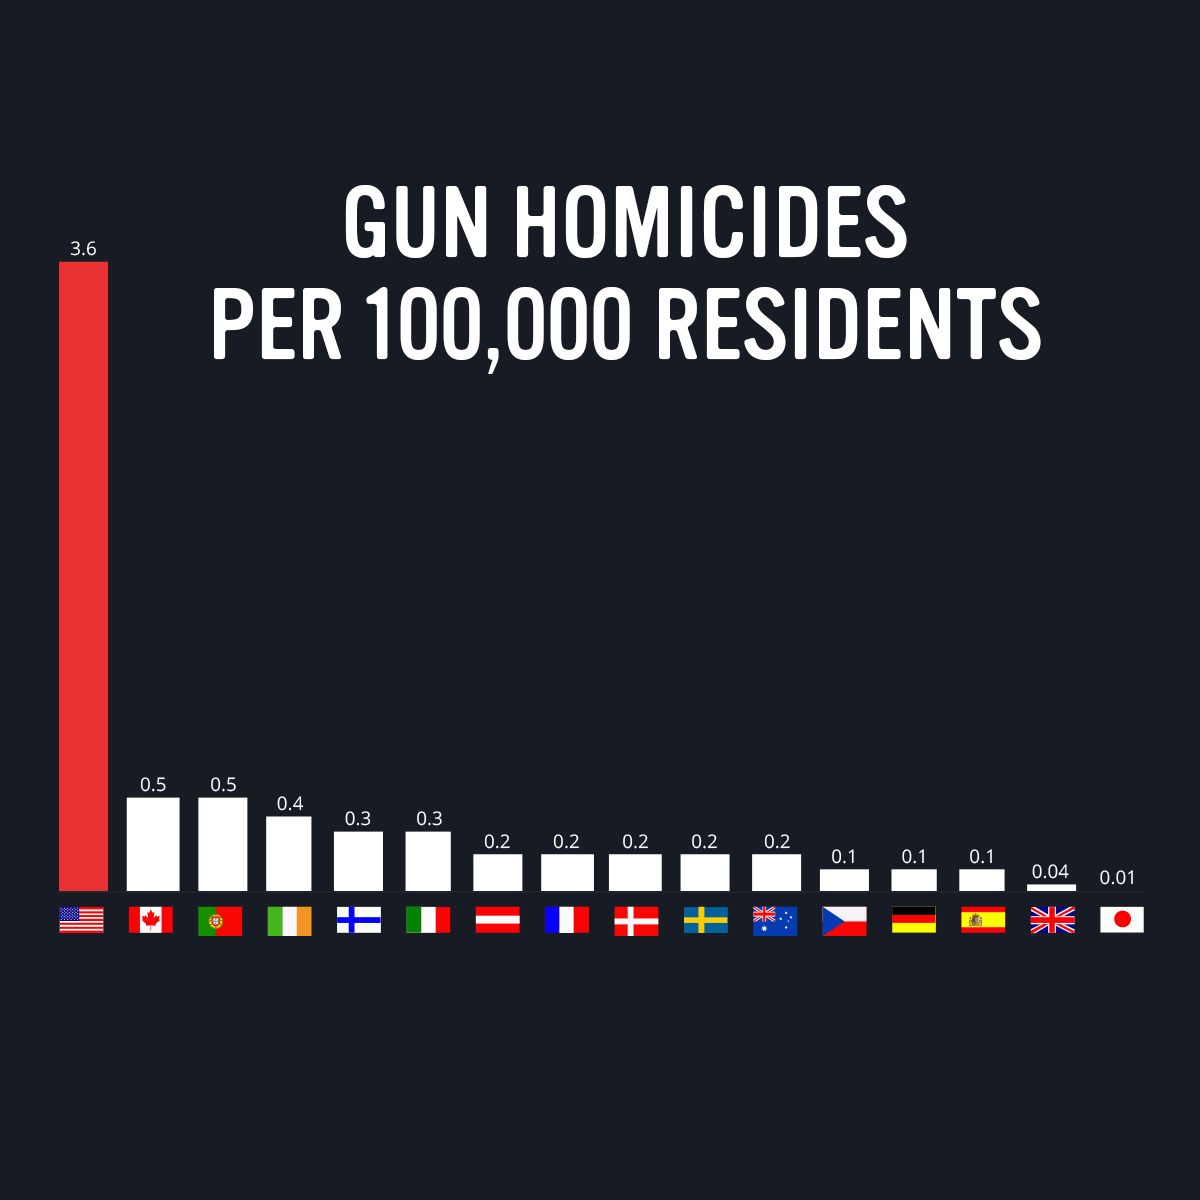 Gun violence statistics per country from Everytown for Gun Safety.